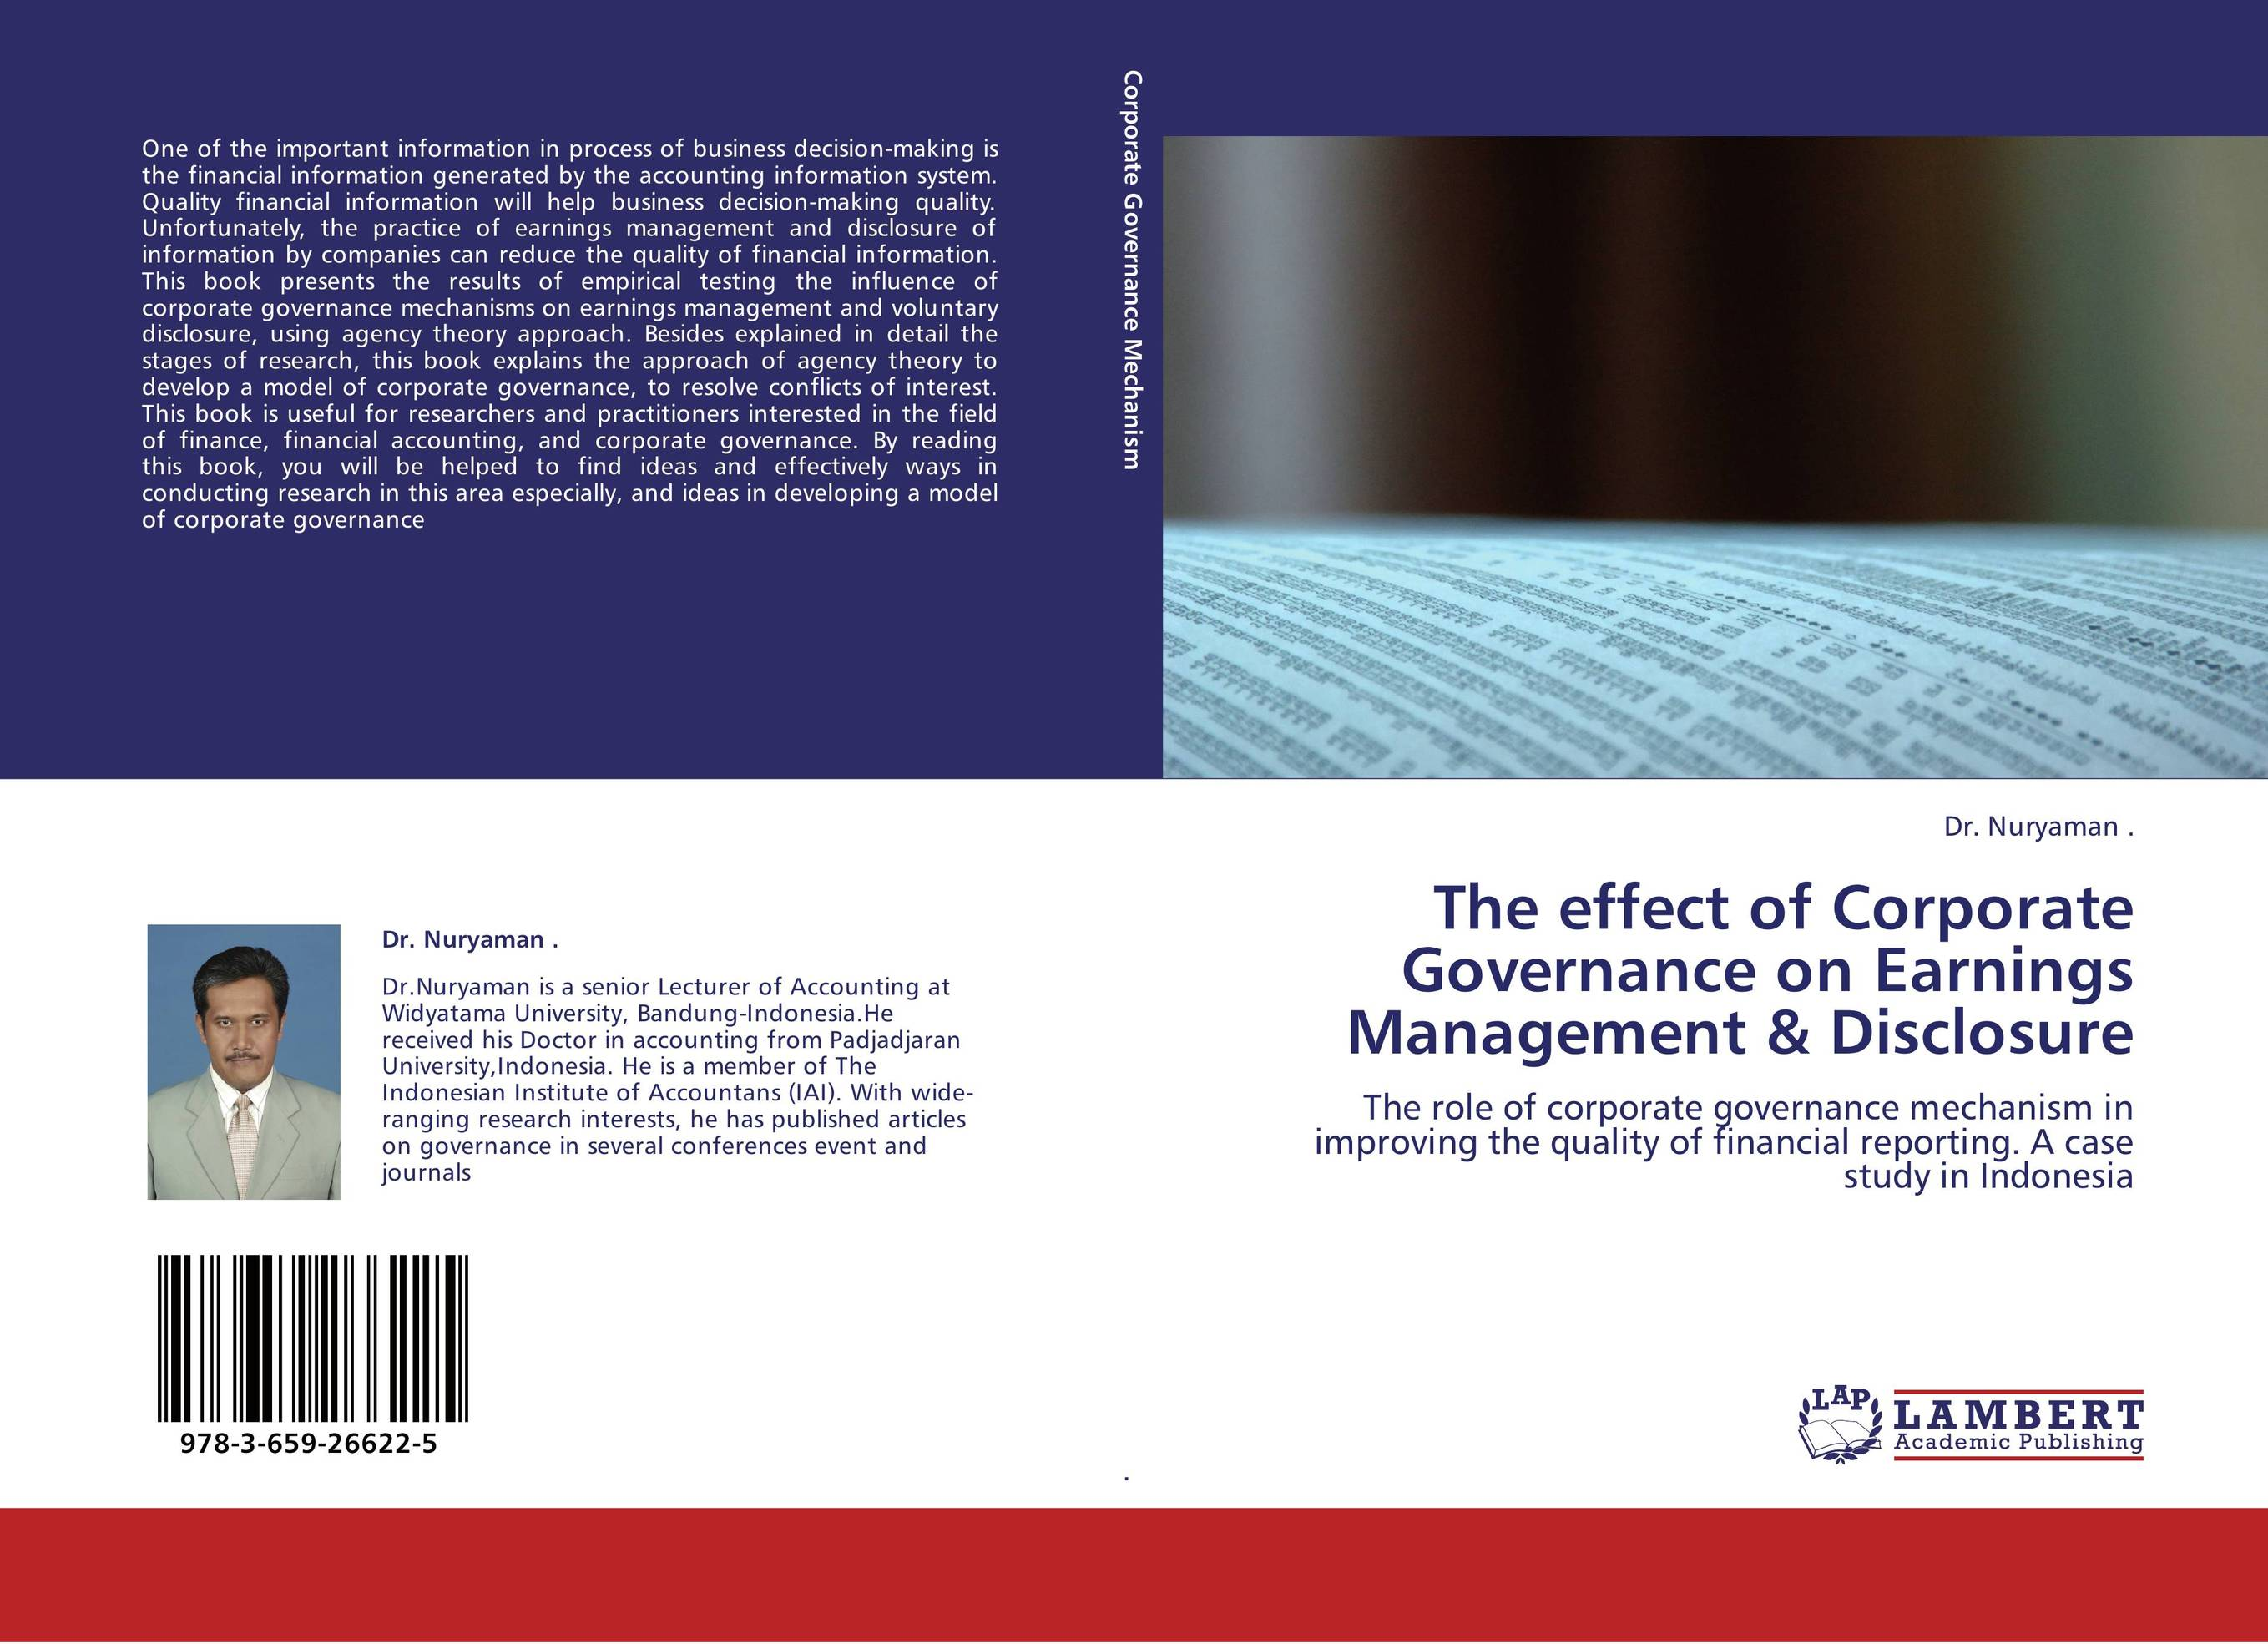 three essays on corporate governance and financial disclosure Corporate governance structures and practices continue to be important in determining the cost of capital in a global capital market australian companies must be equipped to compete globally and to.